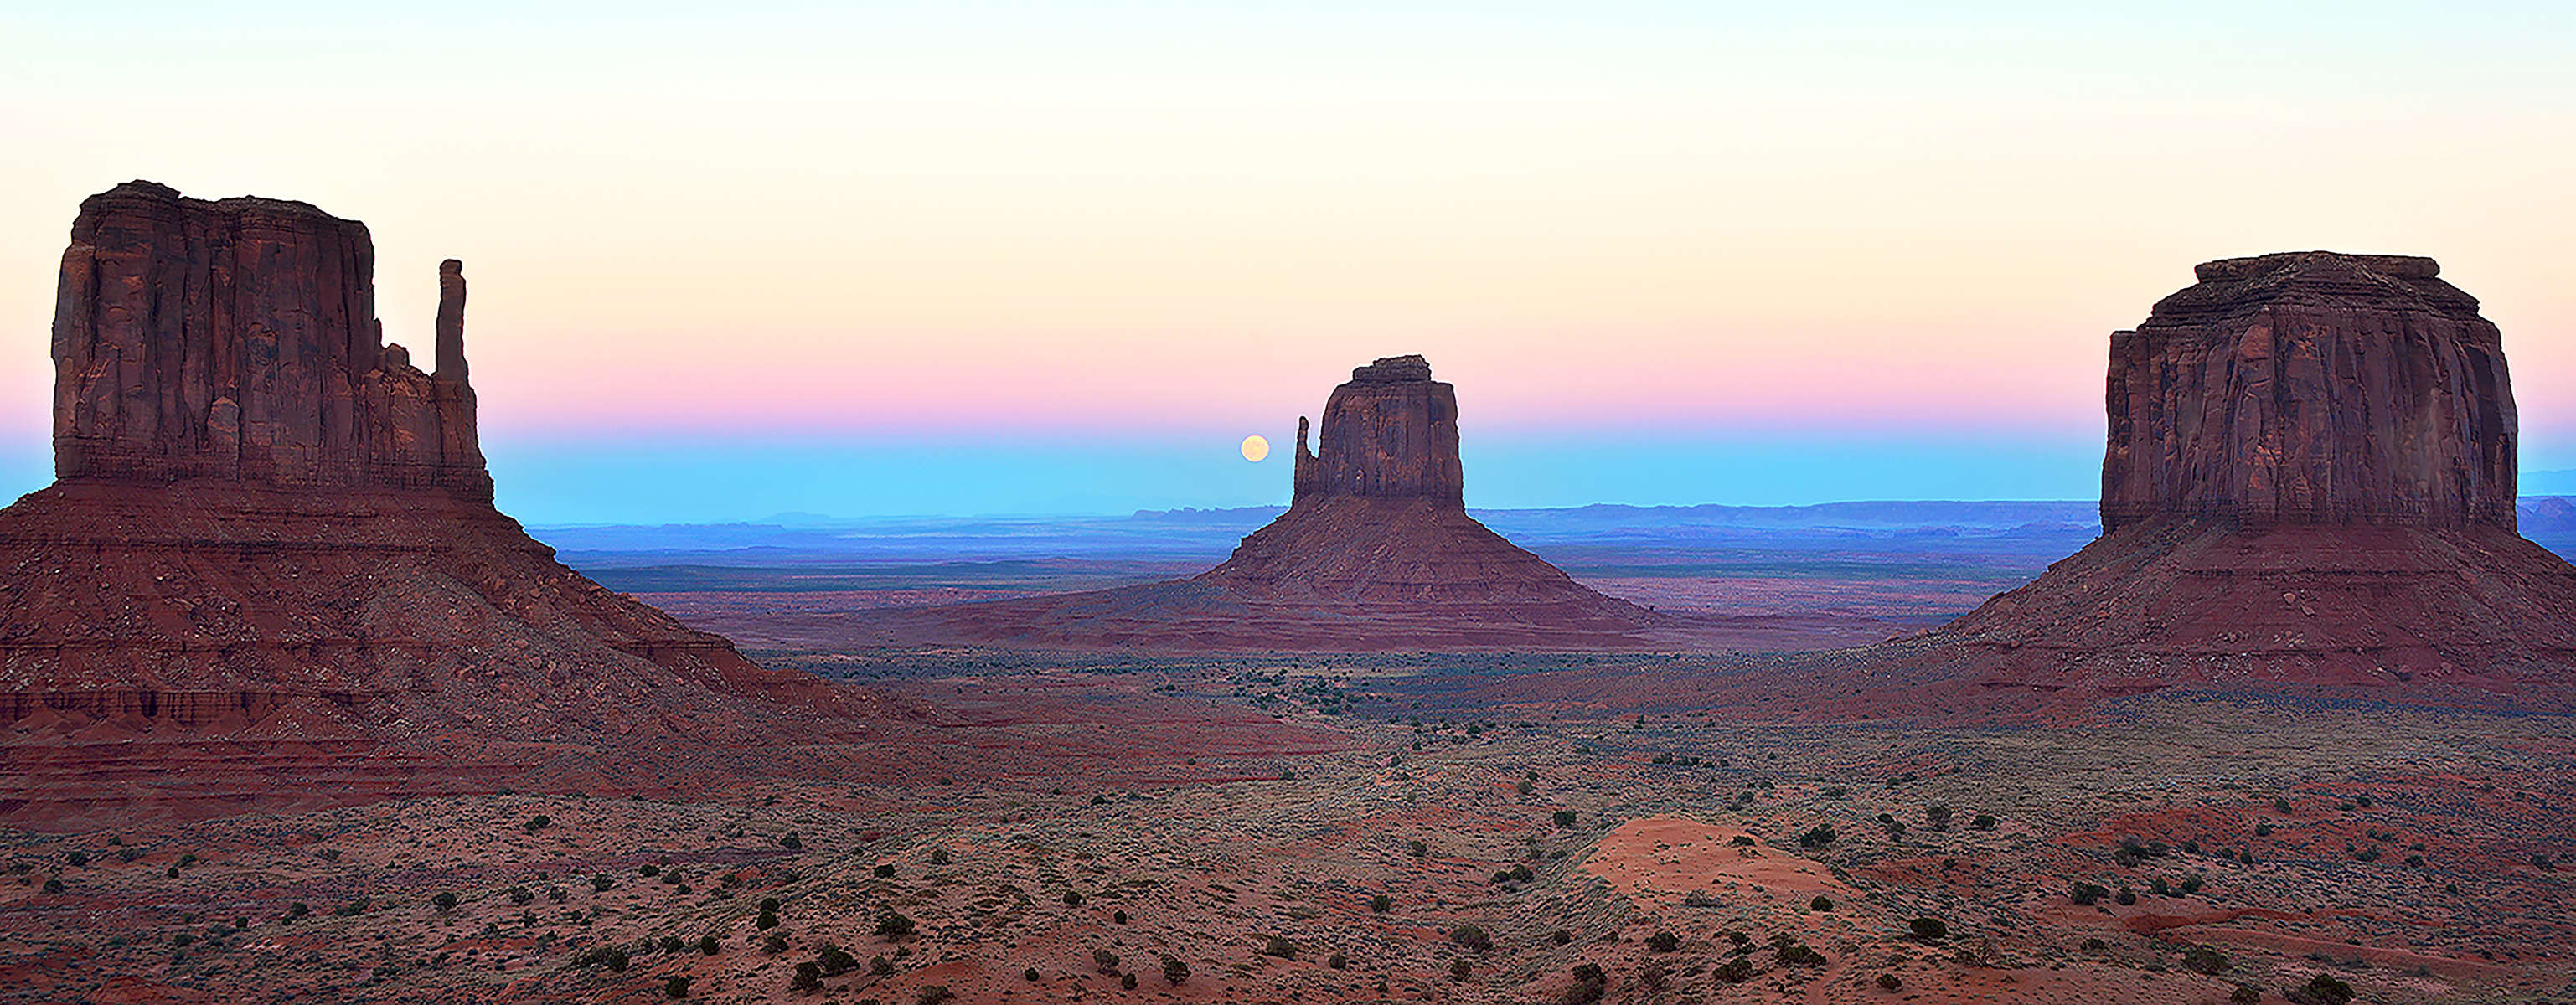 Roeser---Monument-Valley-Moonrise-for-Spectrum-Gallery-Newsletter